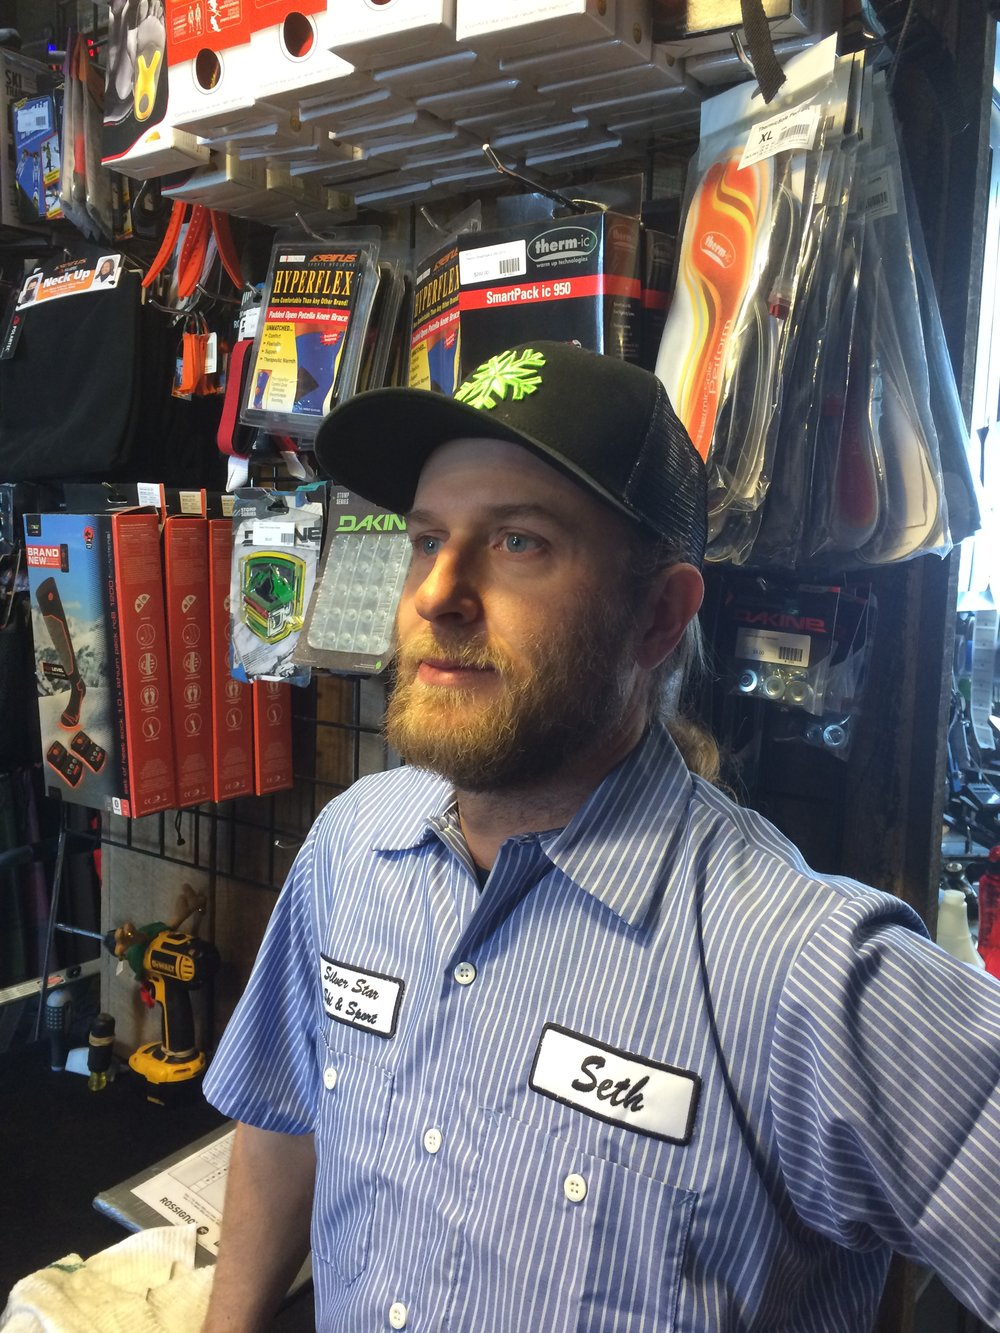 Seth - Rental Technician - Seth has been with the shop since fall 2014.  He is originally from New Hampshire and is our snowboard guru.